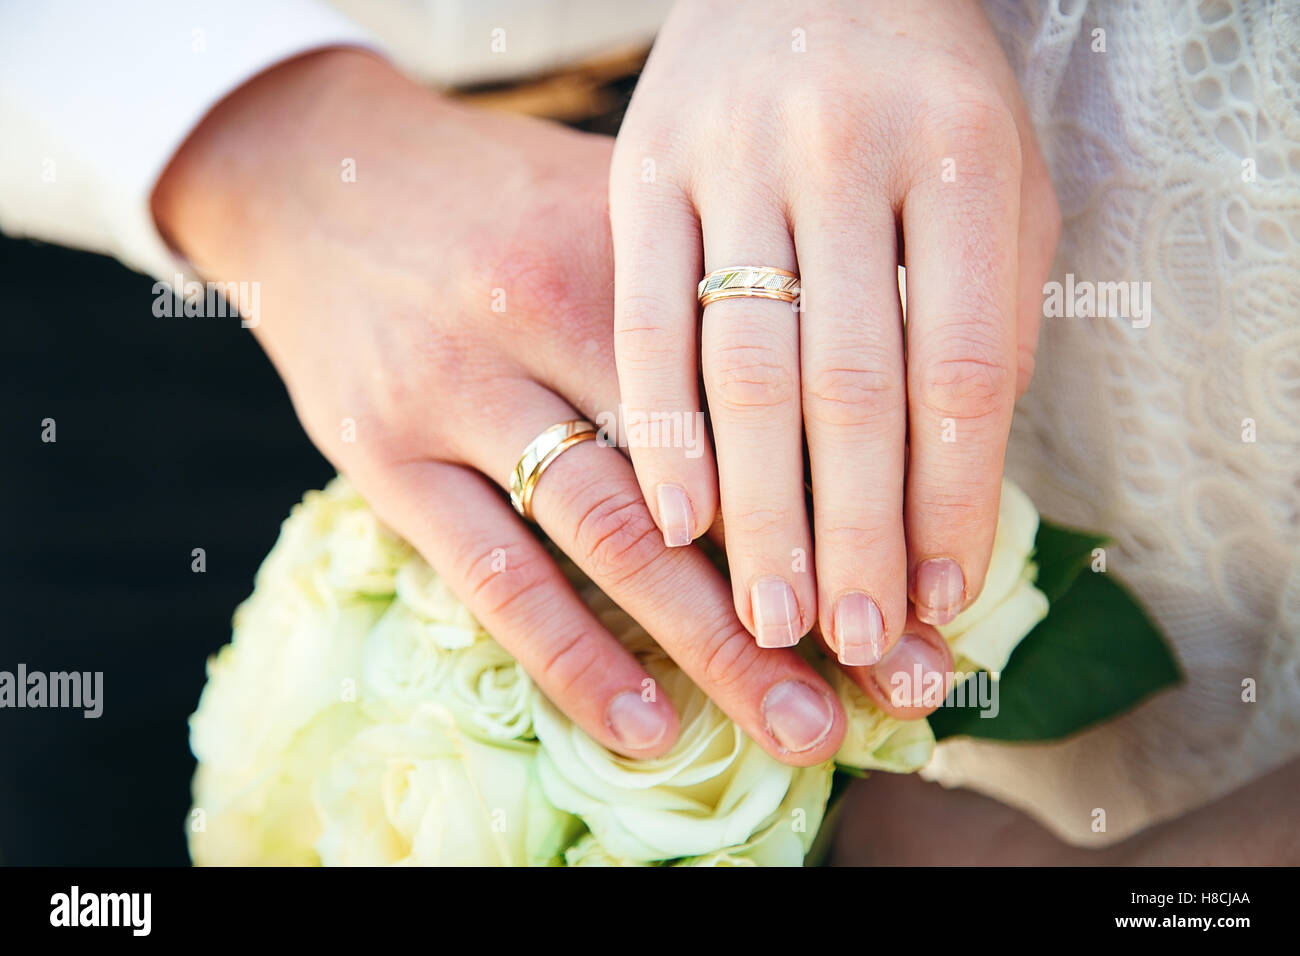 Hands and rings on wedding bouquet Stock Photo: 125667650 - Alamy